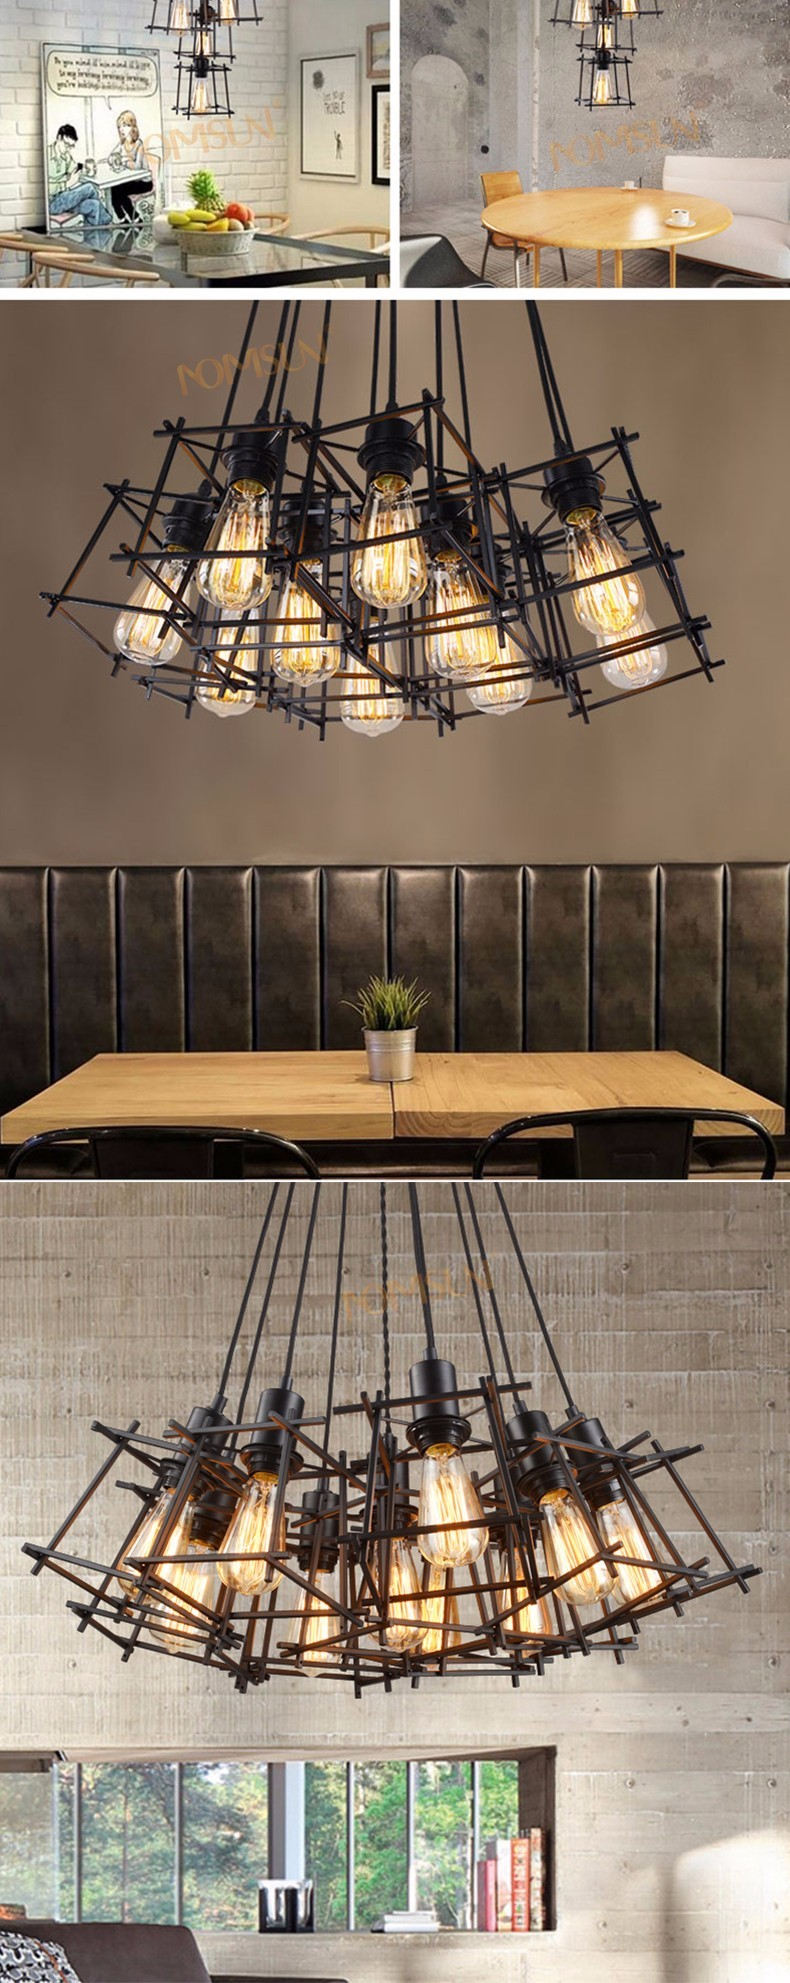 American Loft Vintage pendant light Personality Wrought Iron lights Edison nordic lamp industrial cage lamp lighting fixtures 9